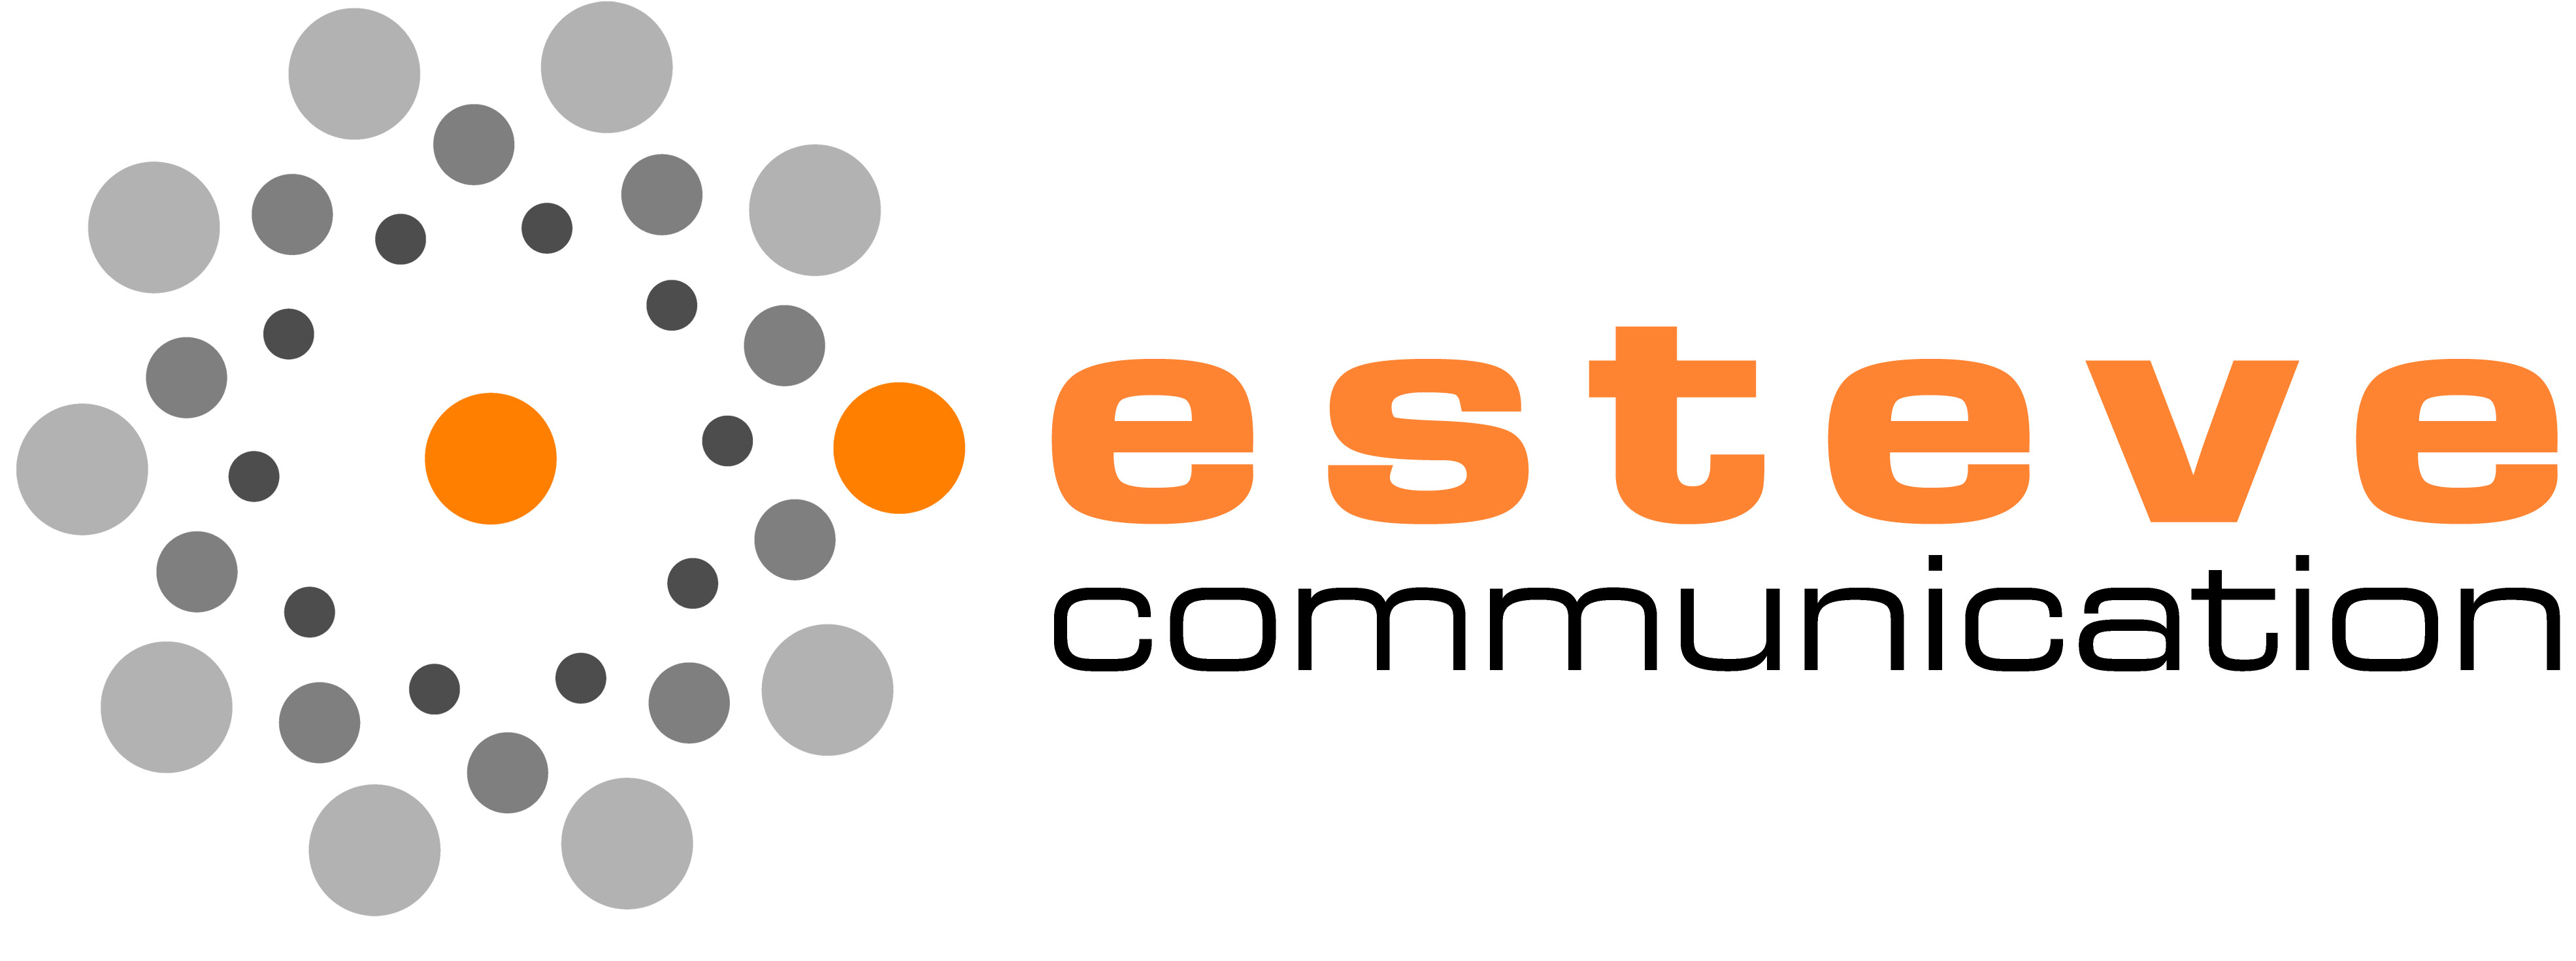 Esteve Communication